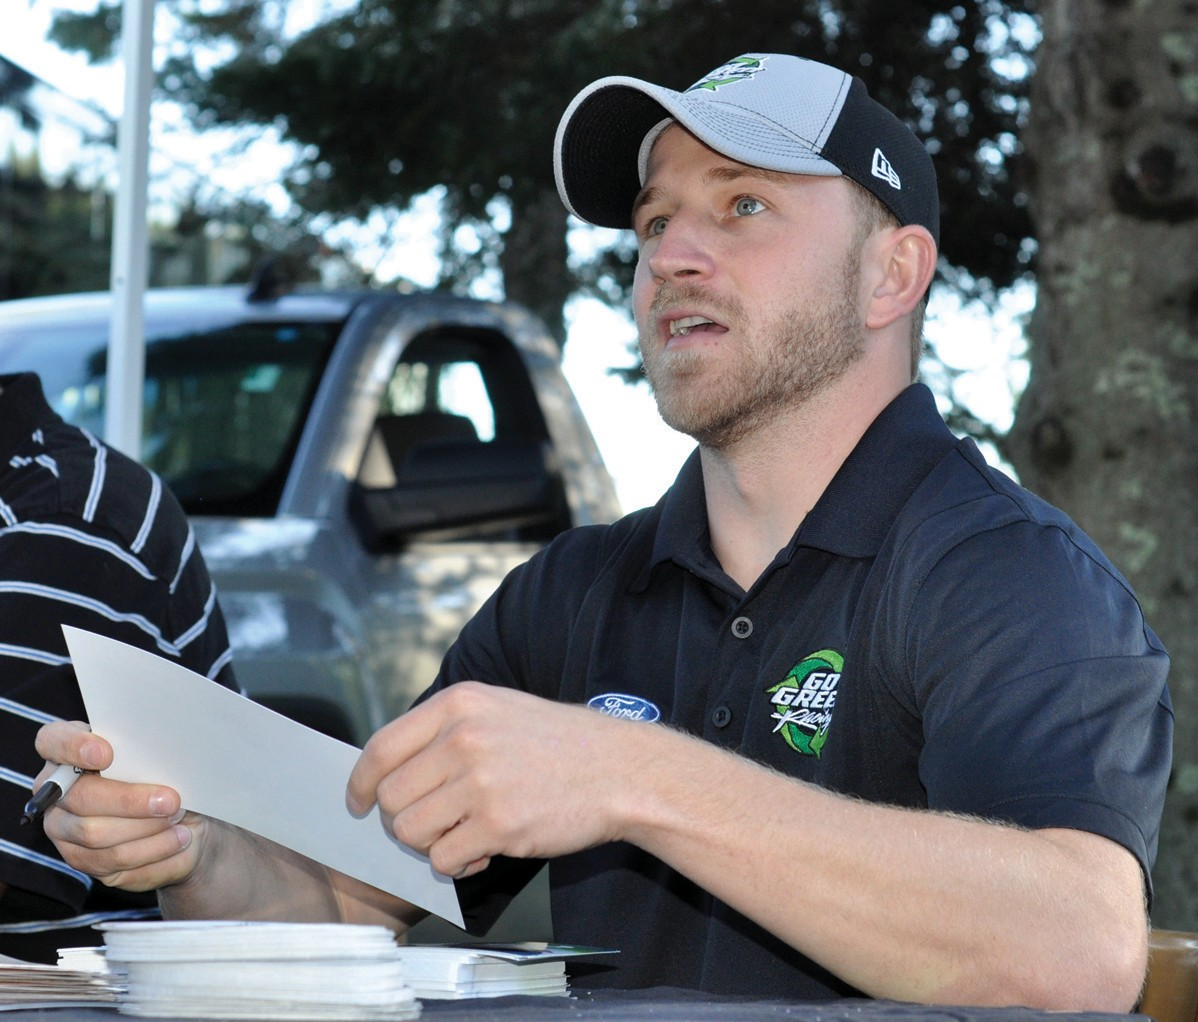 NASCAR driver Jeffrey Earnhardt signs autographs during a meet-and-greet session at Bentley's Saloon in Arundel Wednesday.